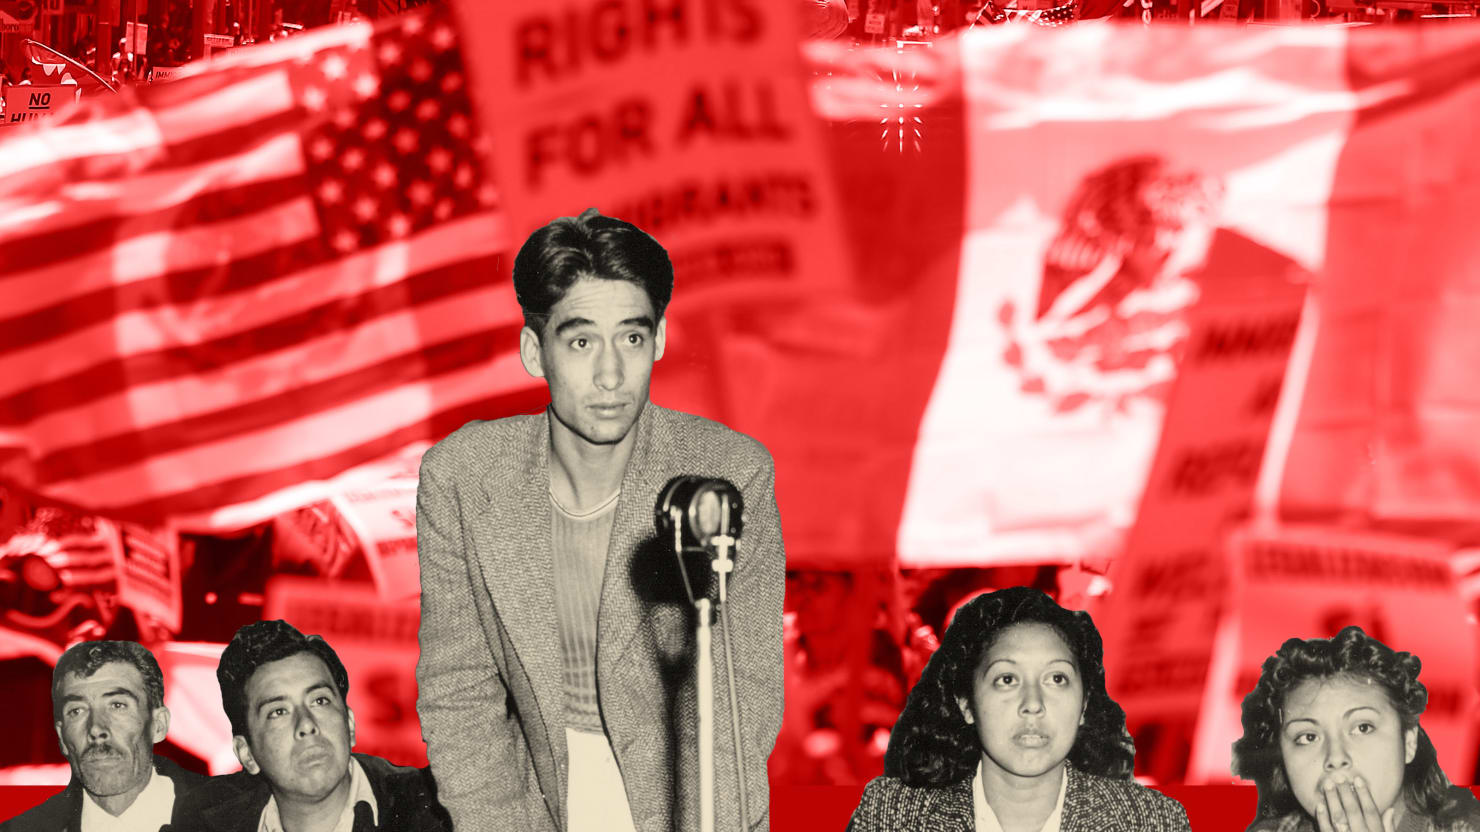 What Trump Will Never Understand About Immigrants